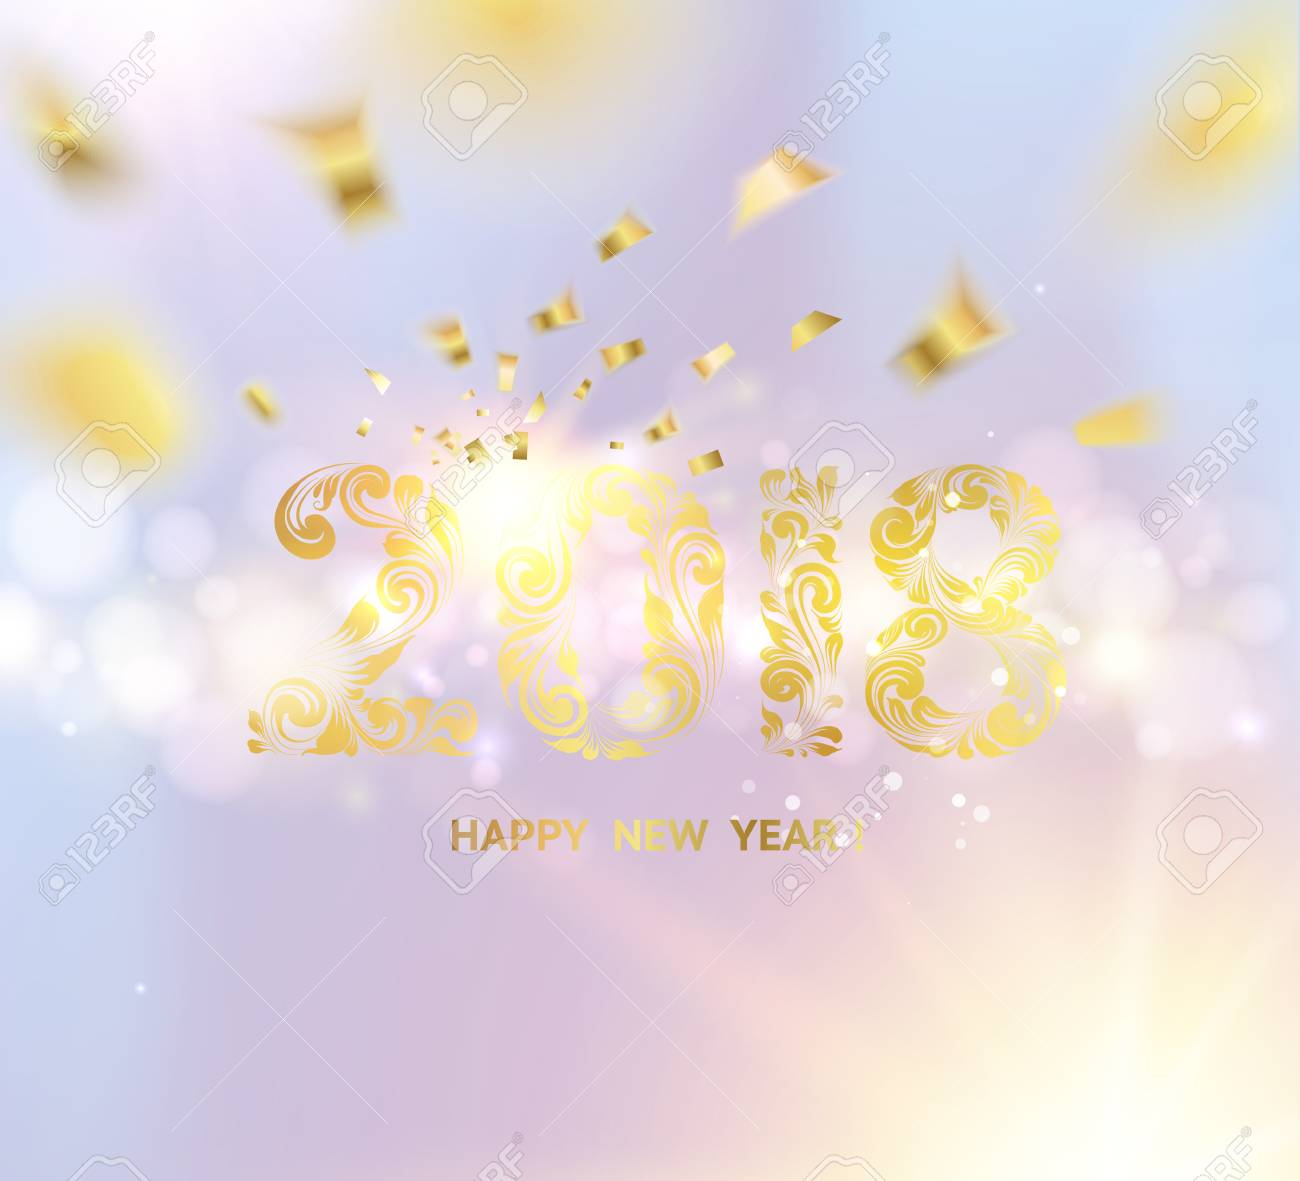 happy new year card over gray background with golden sparks